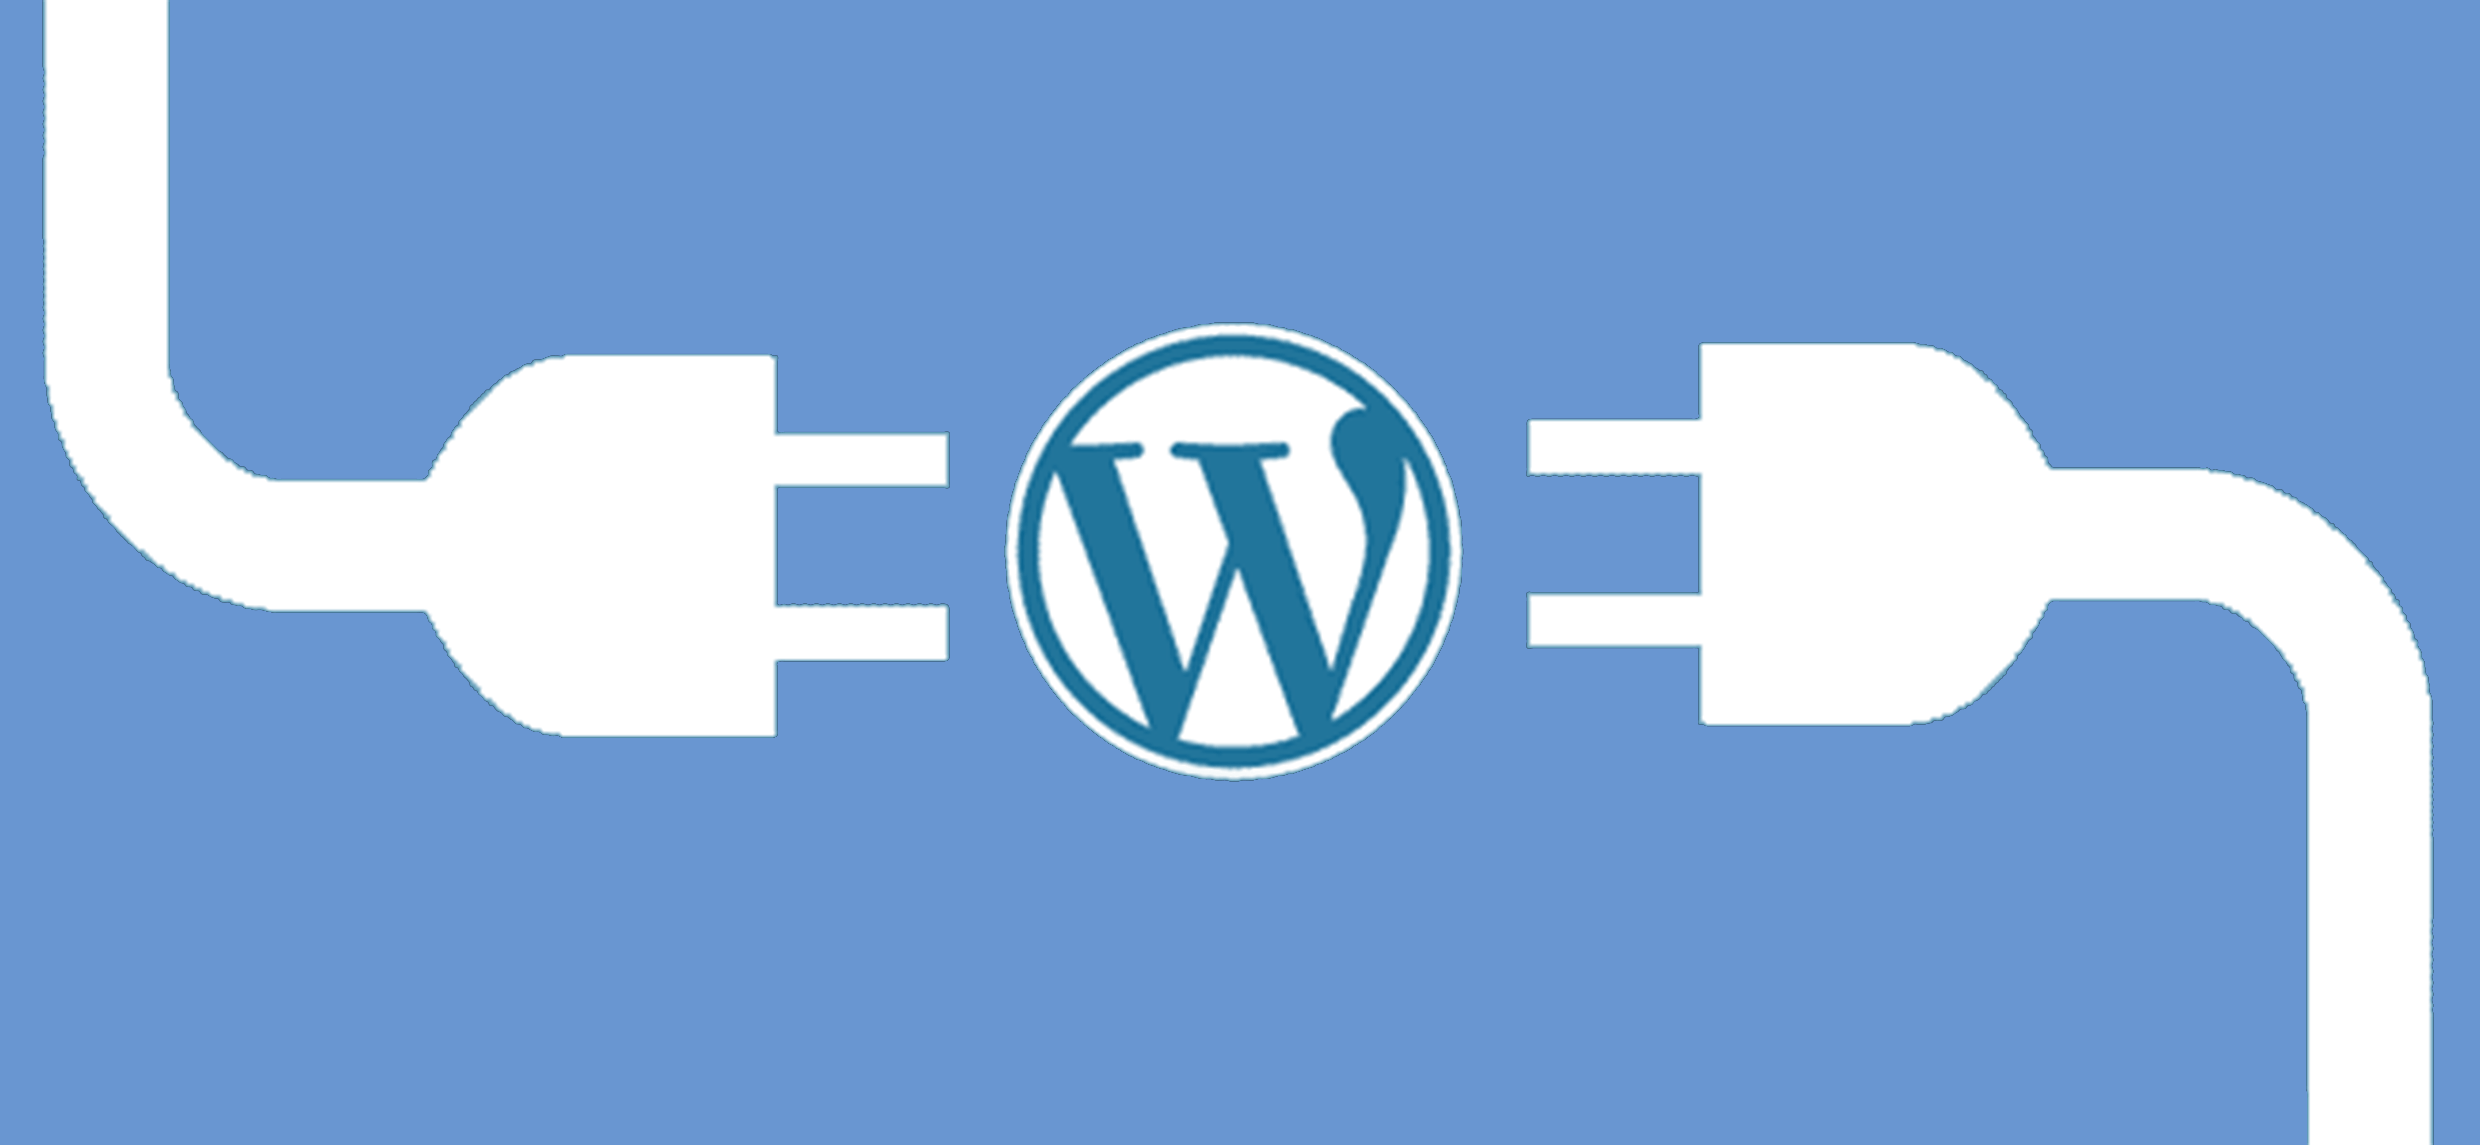 Top 13 WordPress plug-ins: I